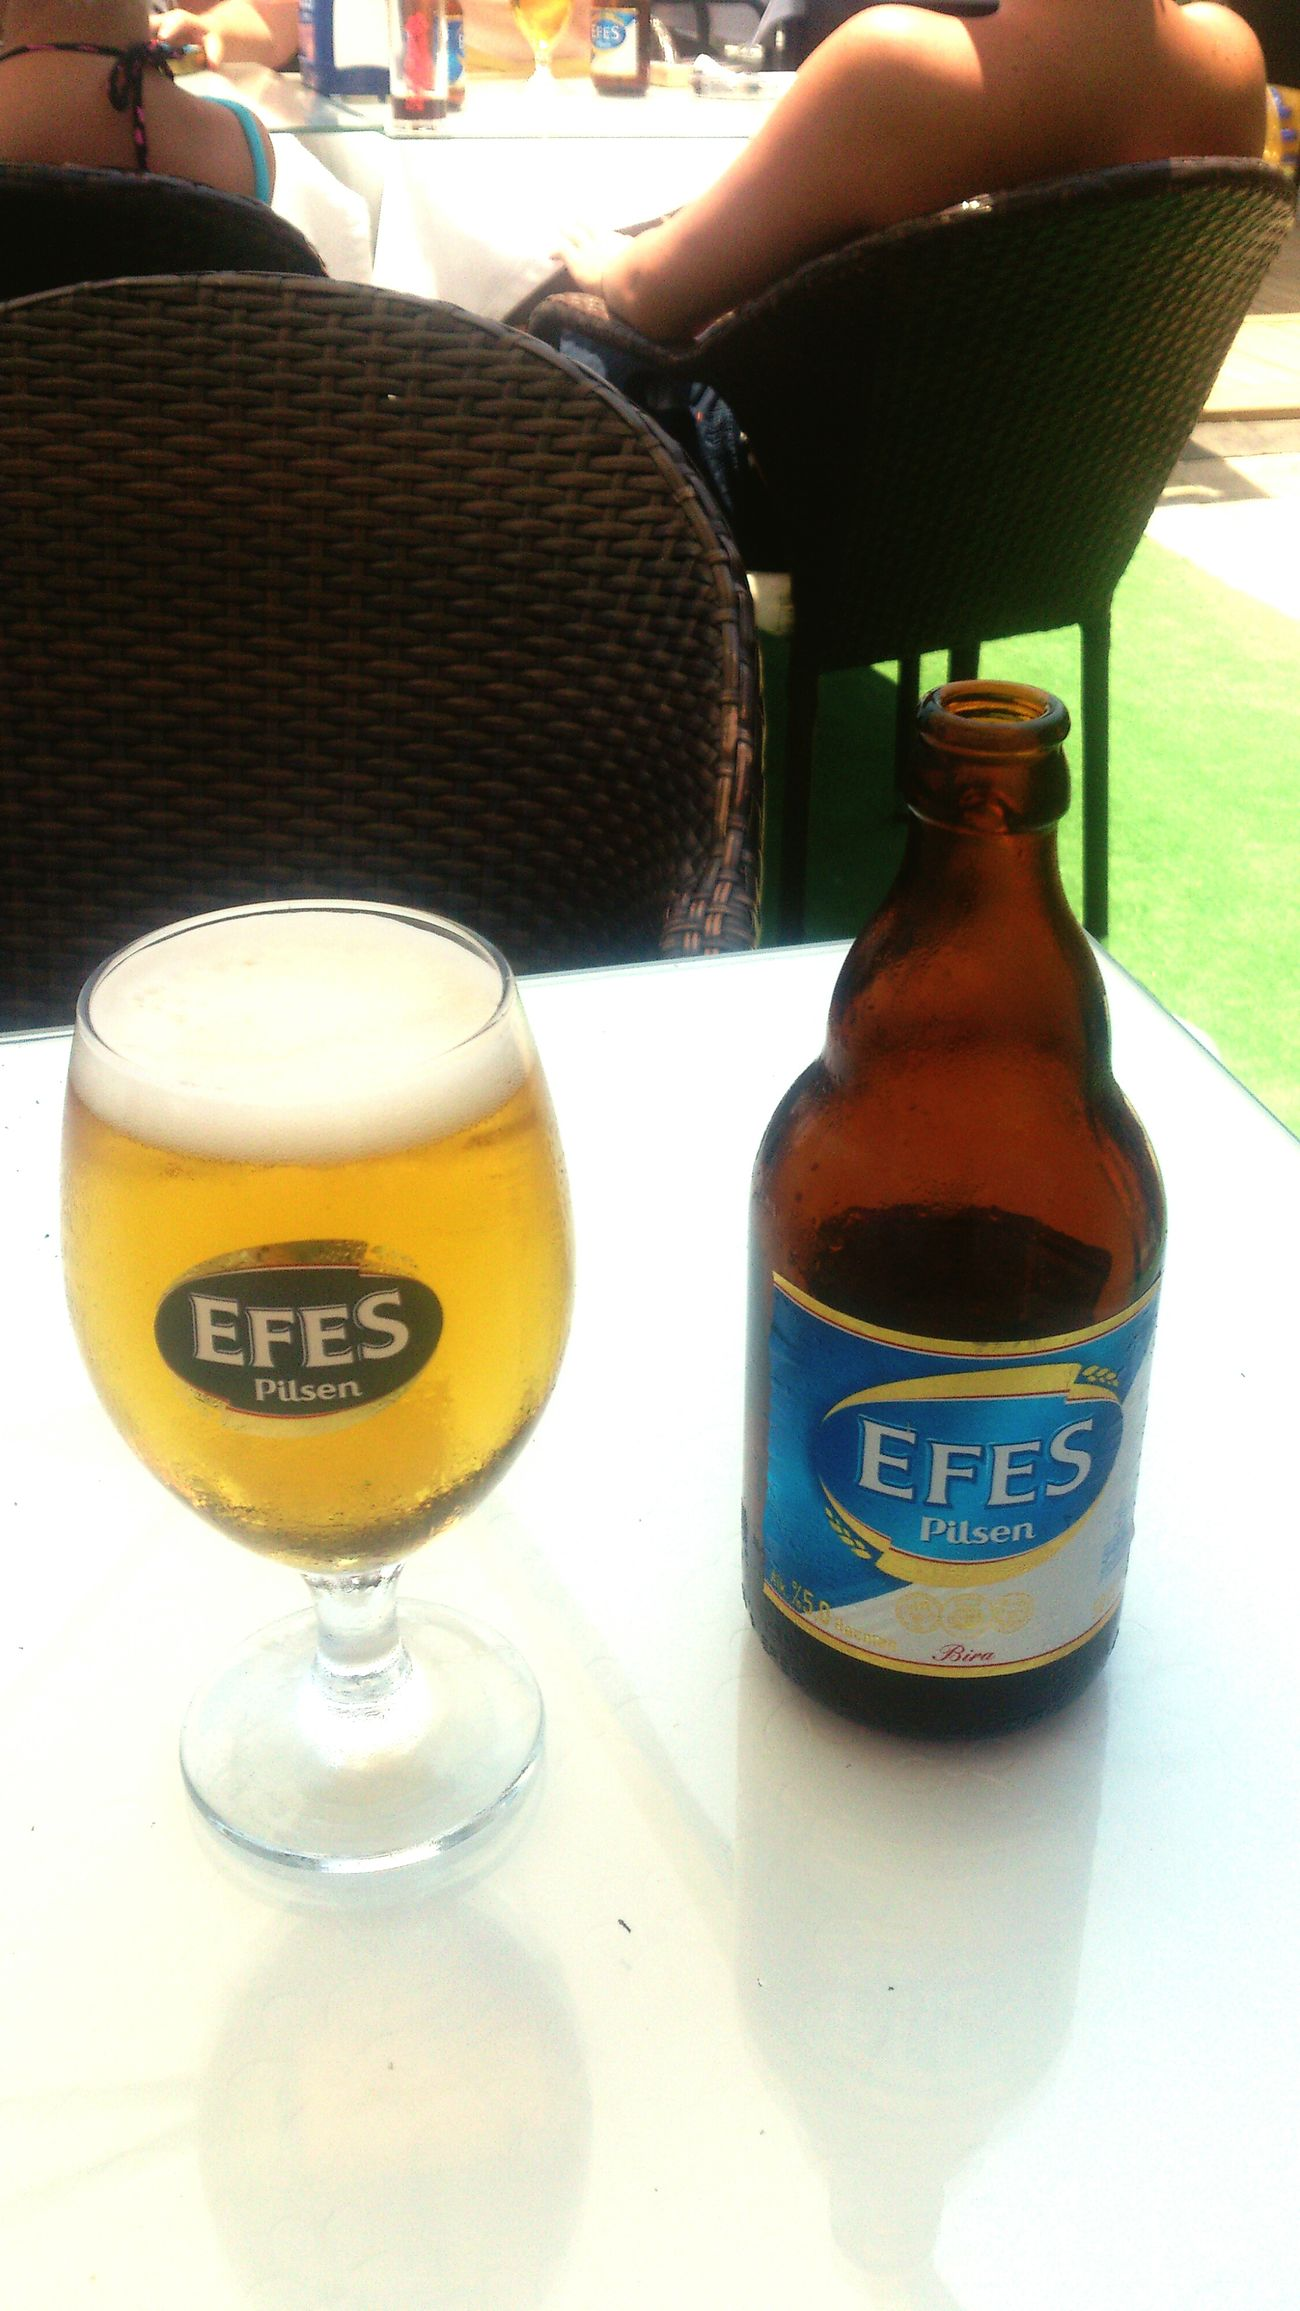 Efes EfesPilsen Efes Pilsen🍺 Efes Pilsen Side, Turkey Holiday